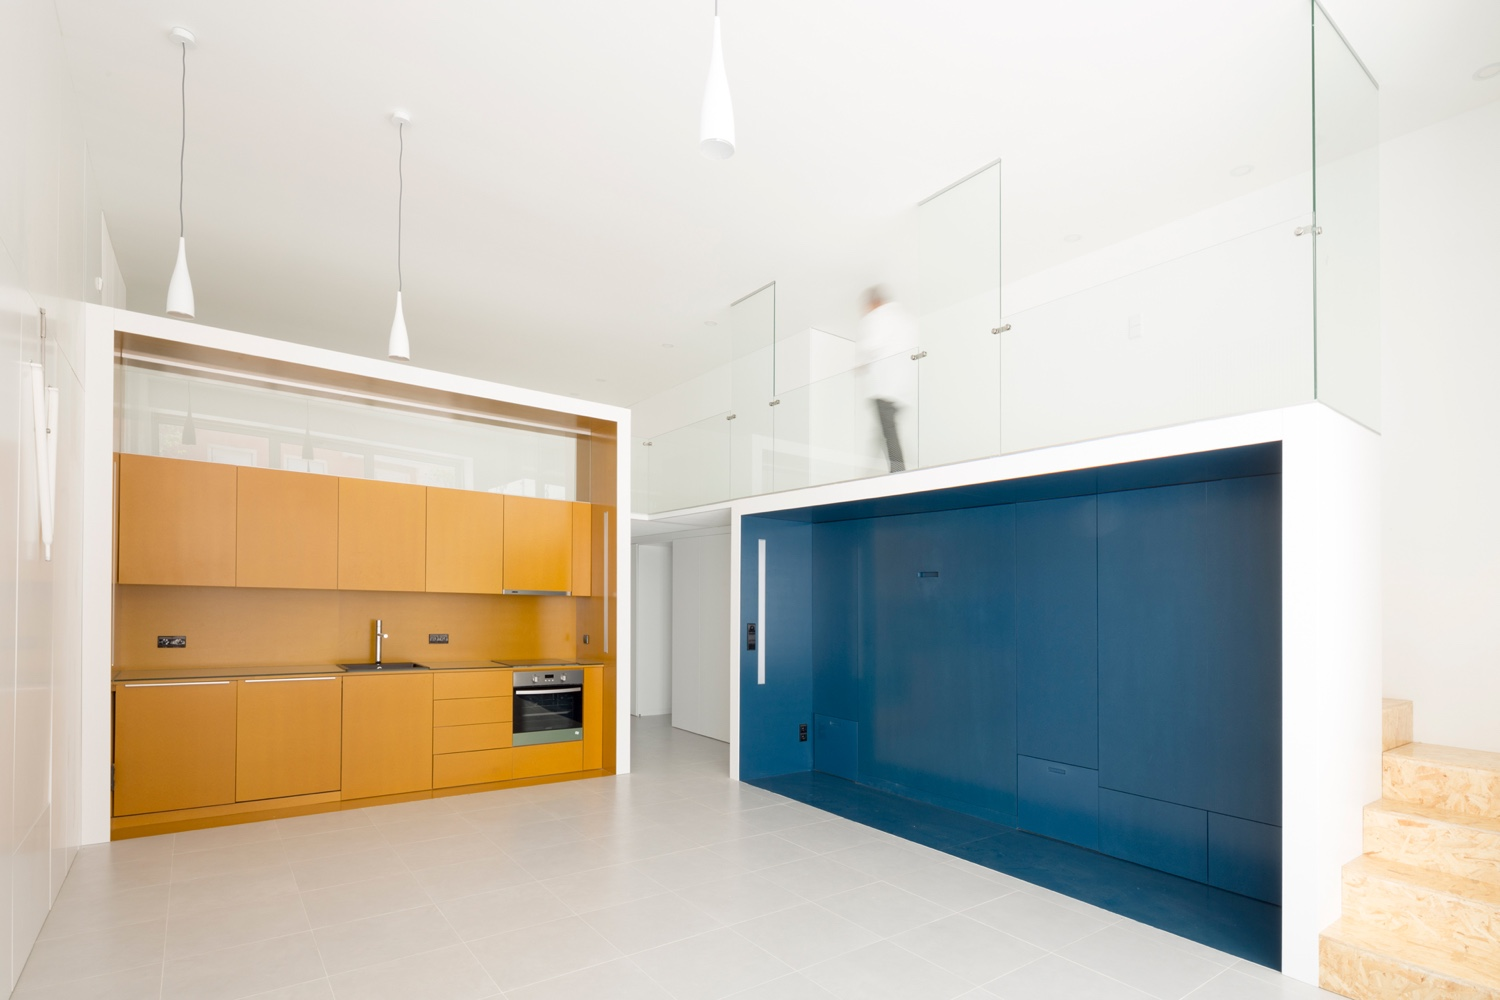 By Studio living modules